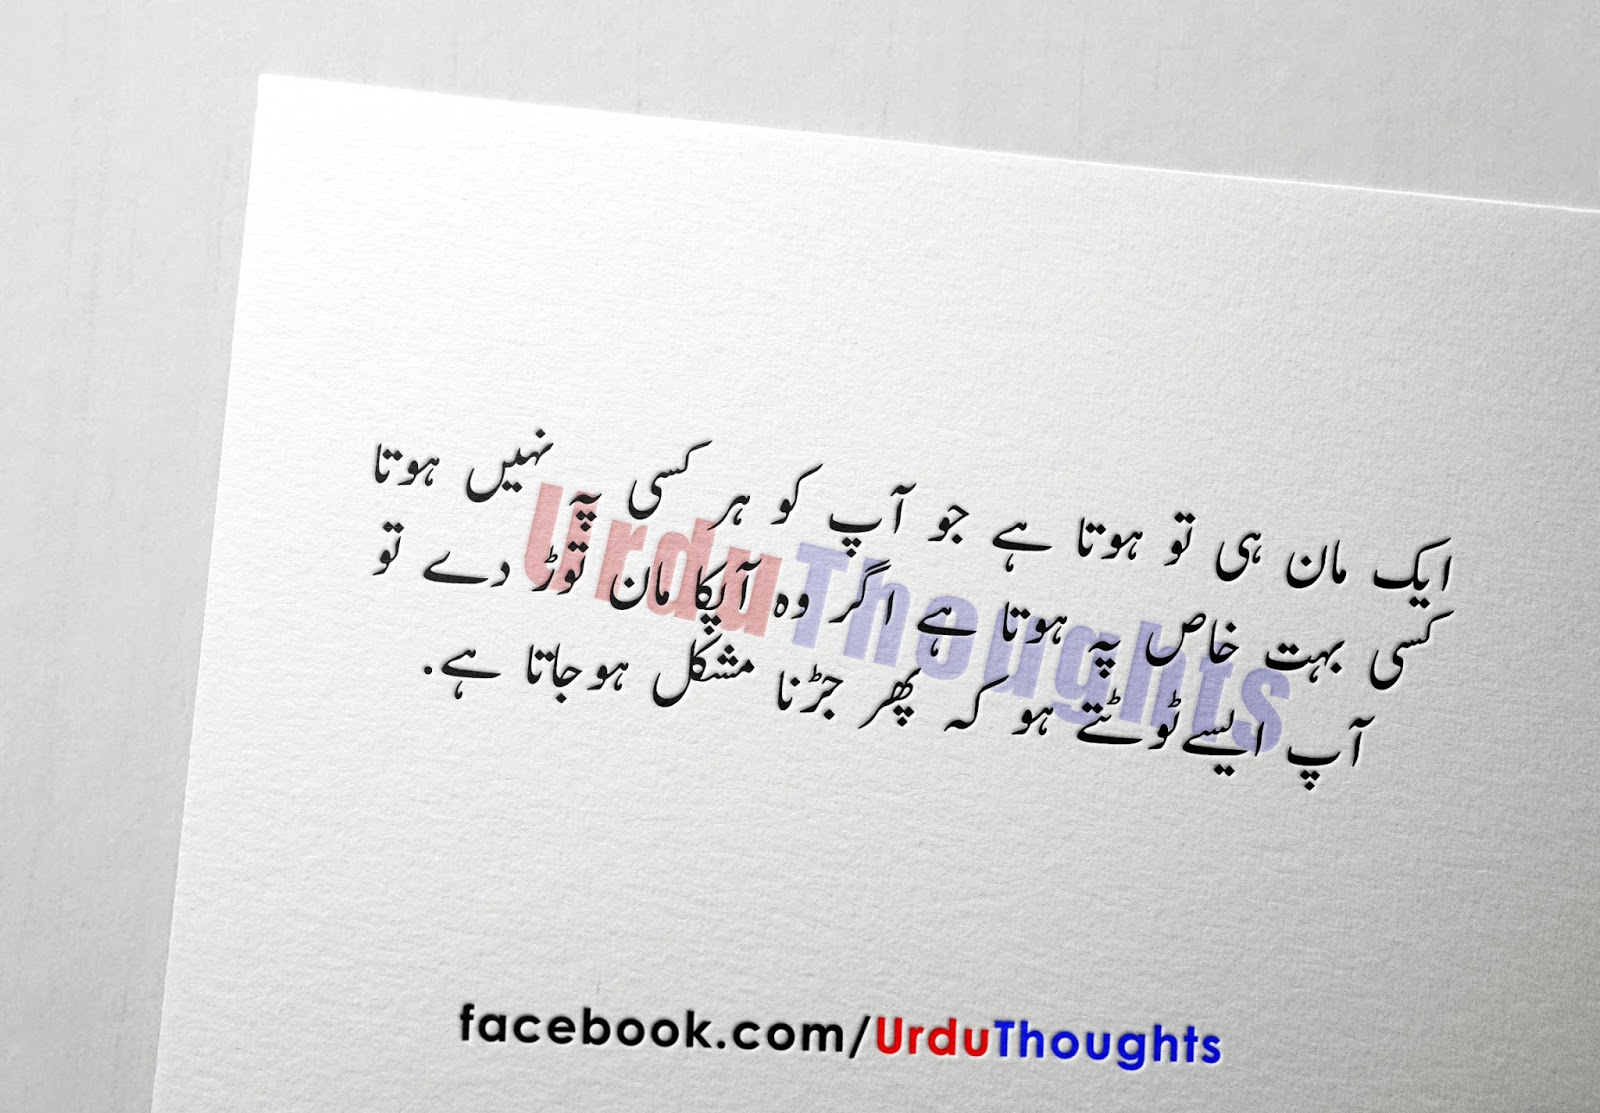 Quotes In Urdu Amazing Best Urdu Quotes With Images  Famous Urdu Quotes  Urdu Thoughts